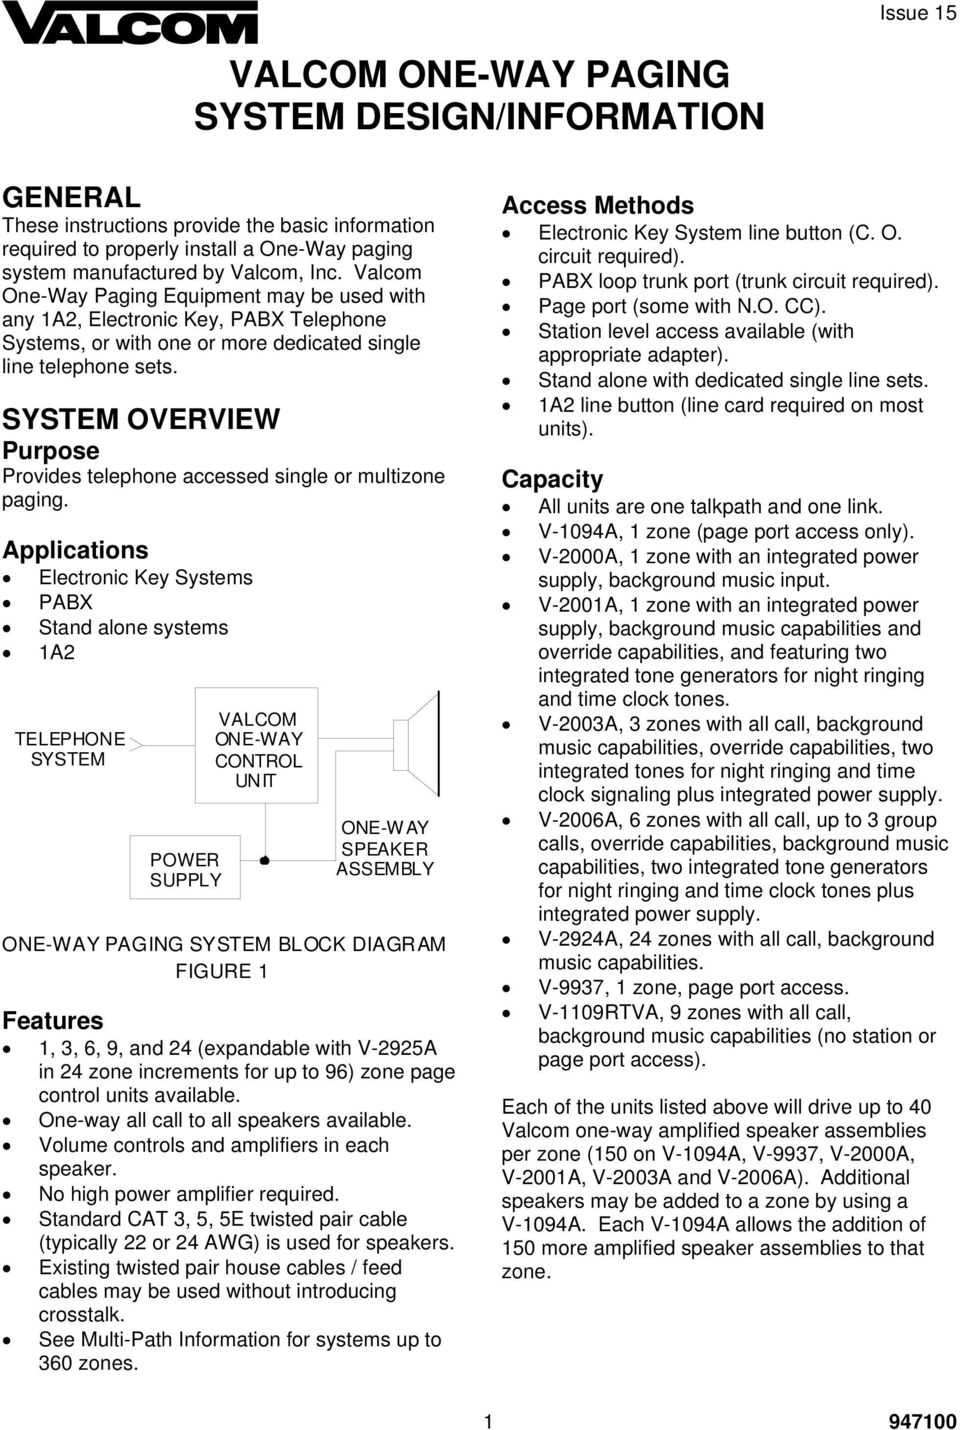 VALCOM ONE-WAY PAGING SYSTEM DESIGN/INFORMATION - PDF Free ... on bogen paging systems, industrial paging systems, cisco phones systems,